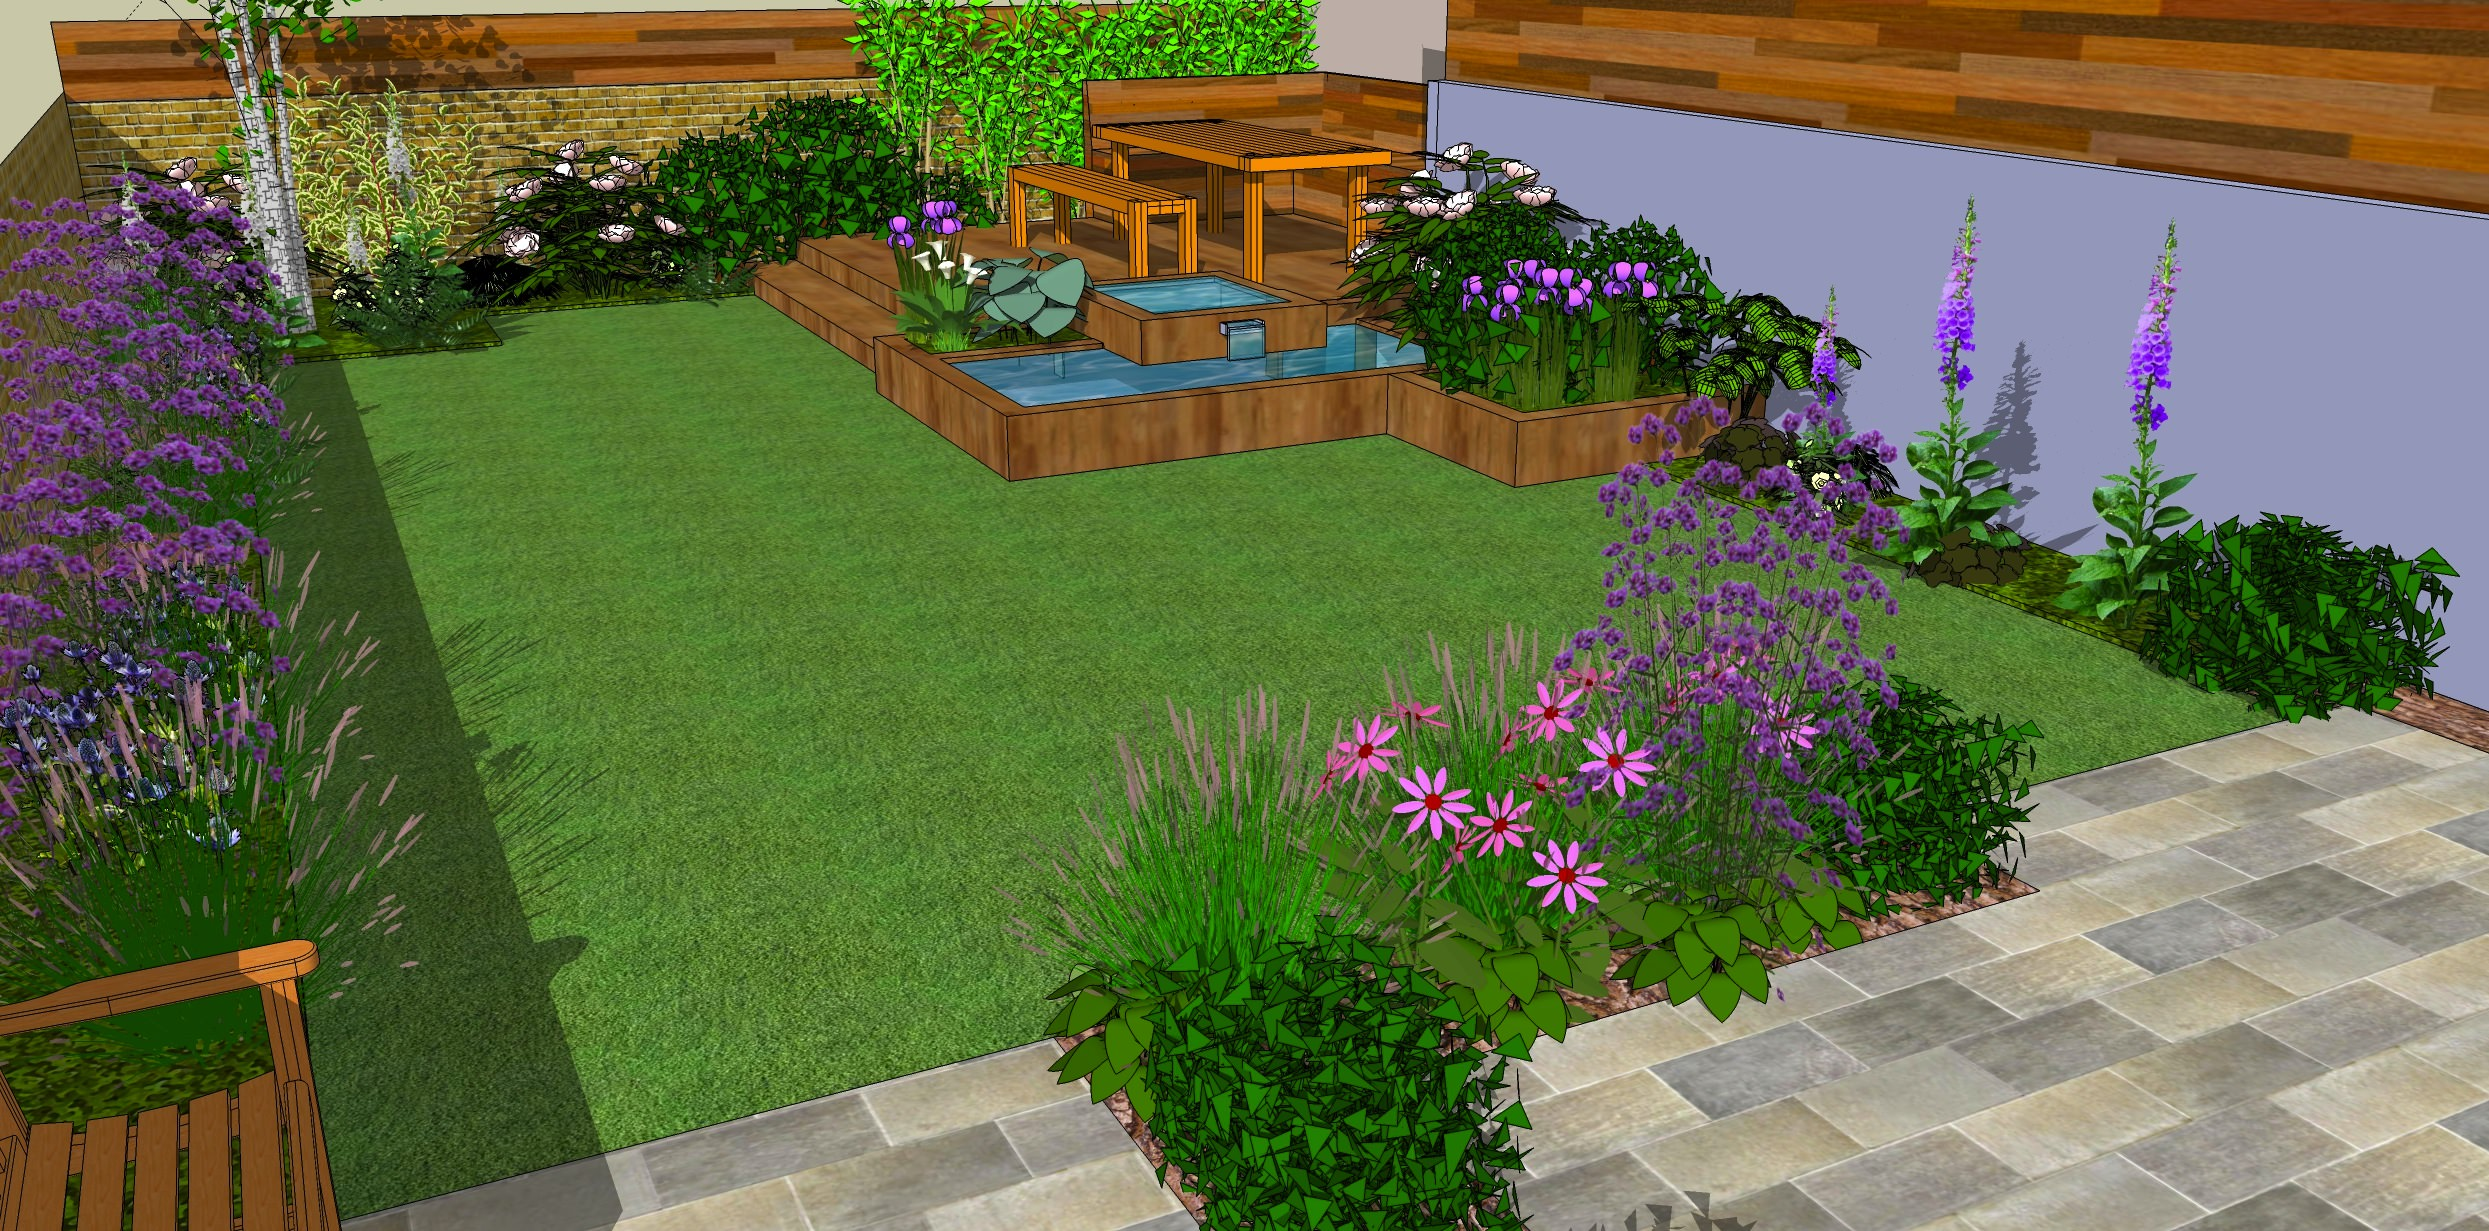 Low maintenance garden designs garden club london for Low maintenance garden designs for small gardens